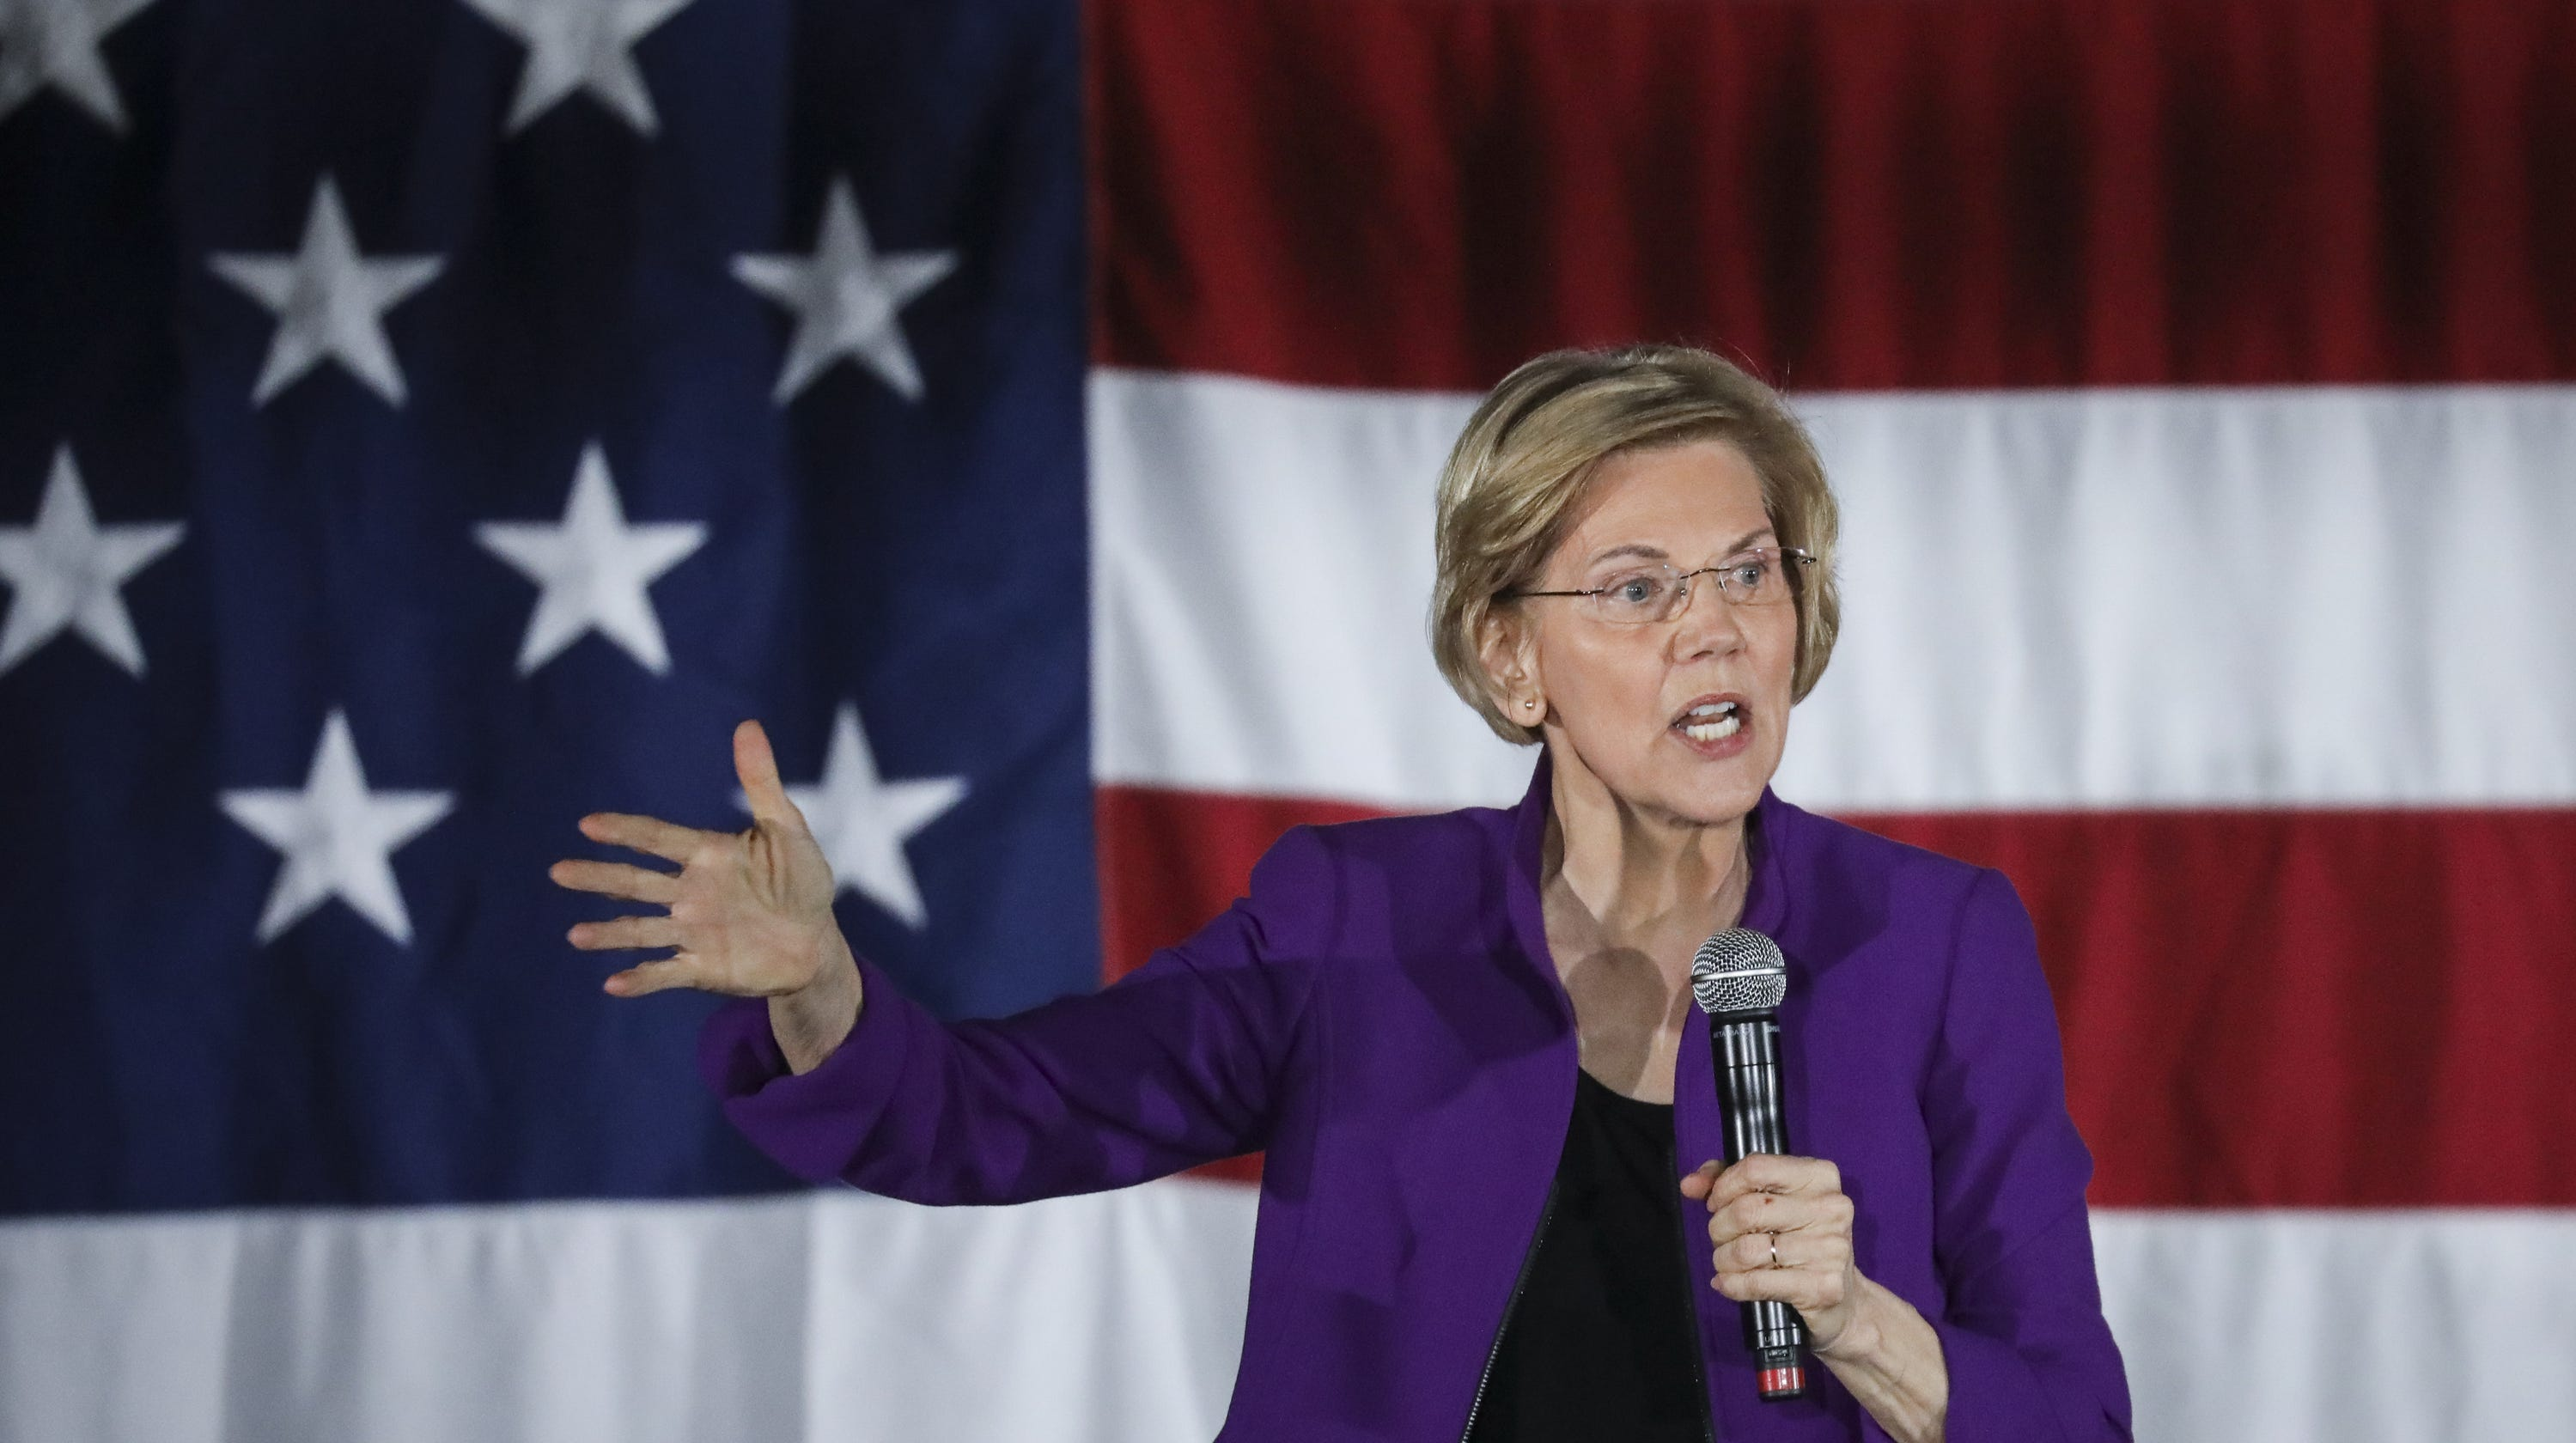 Elizabeth Warren wants to save capitalism, but first she'd have to beat Donald Trump